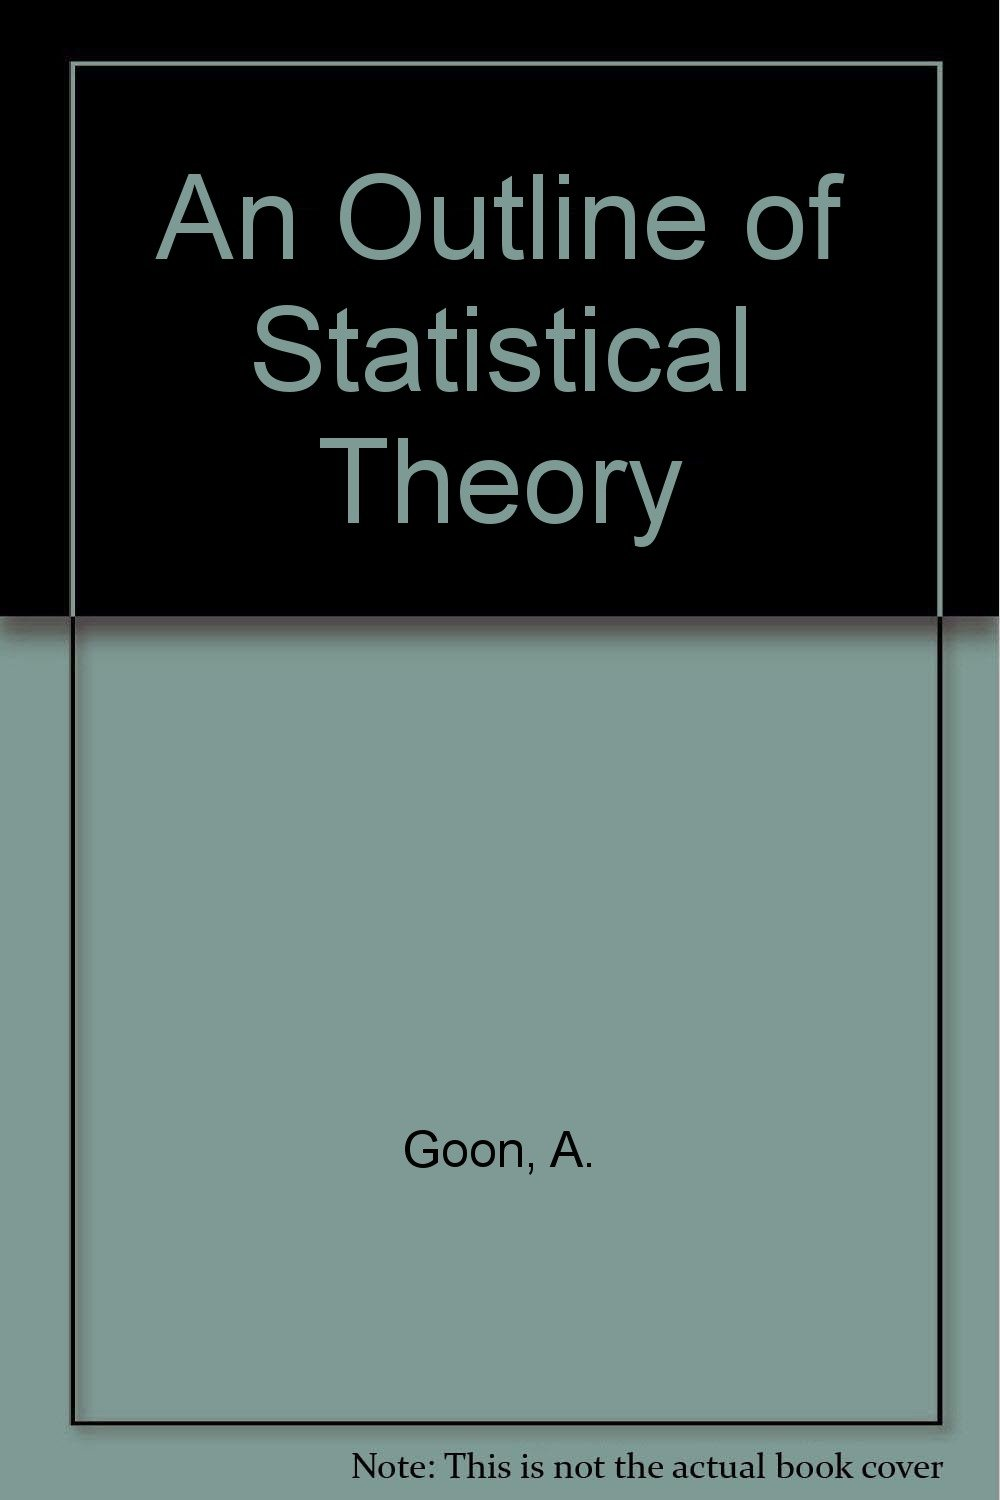 An Outline of Statistical Theory pdf